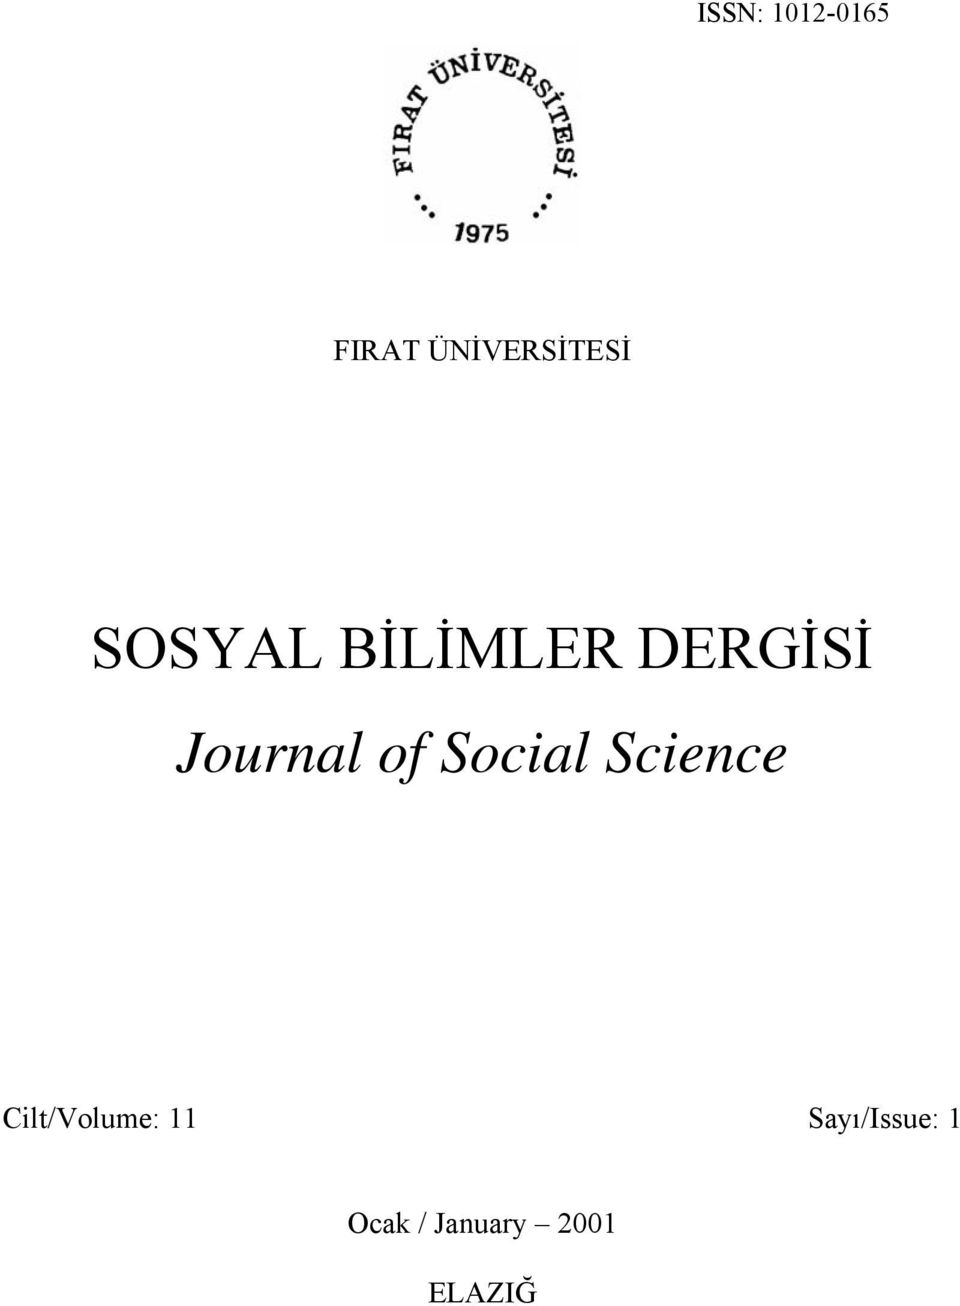 DERGİSİ Journal of Social Science